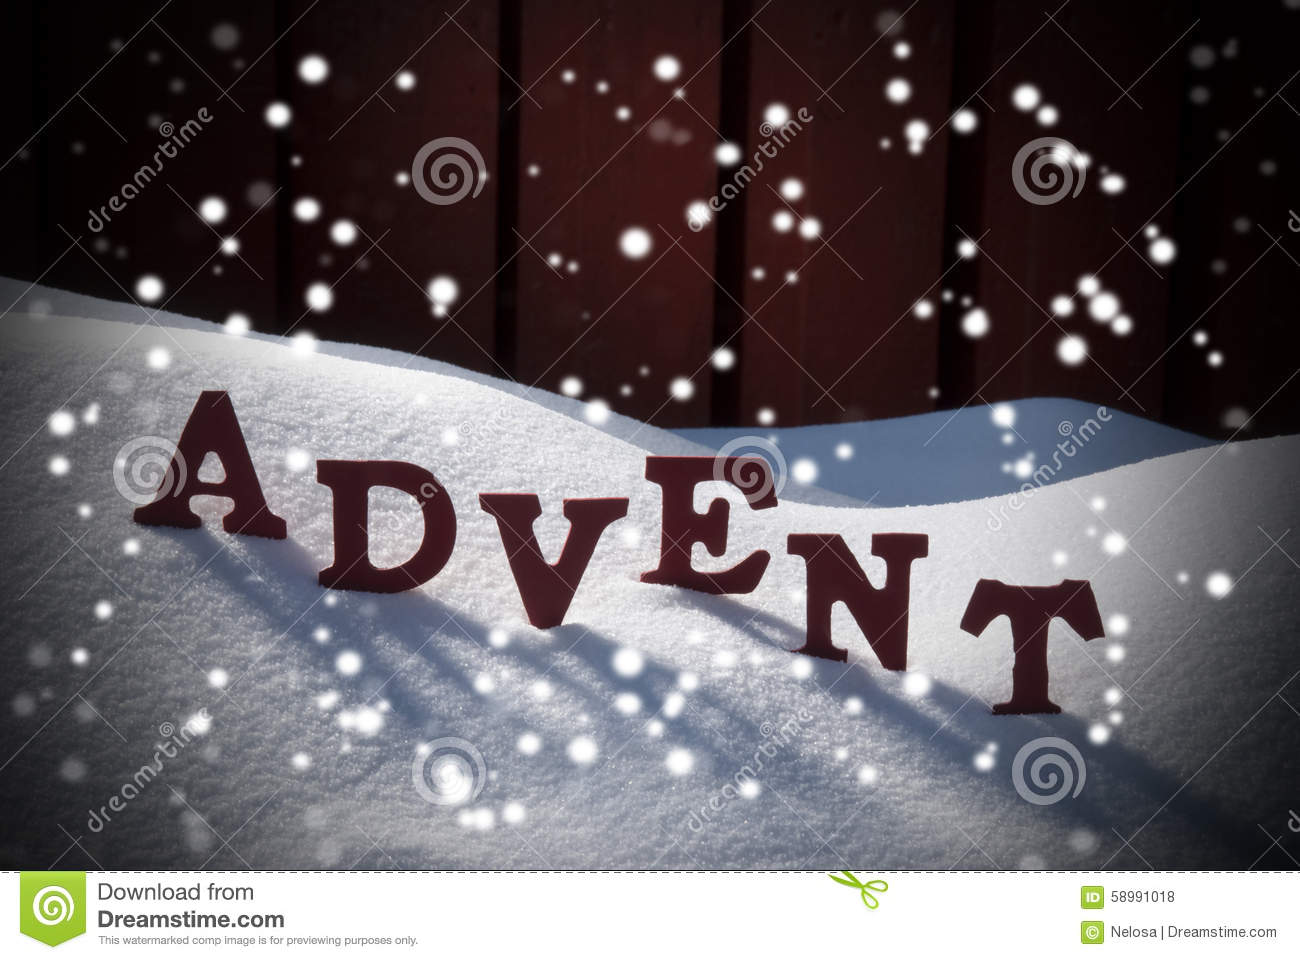 Advent Mean Christmas Time On Snow With Snowflakes Stock Photo ...